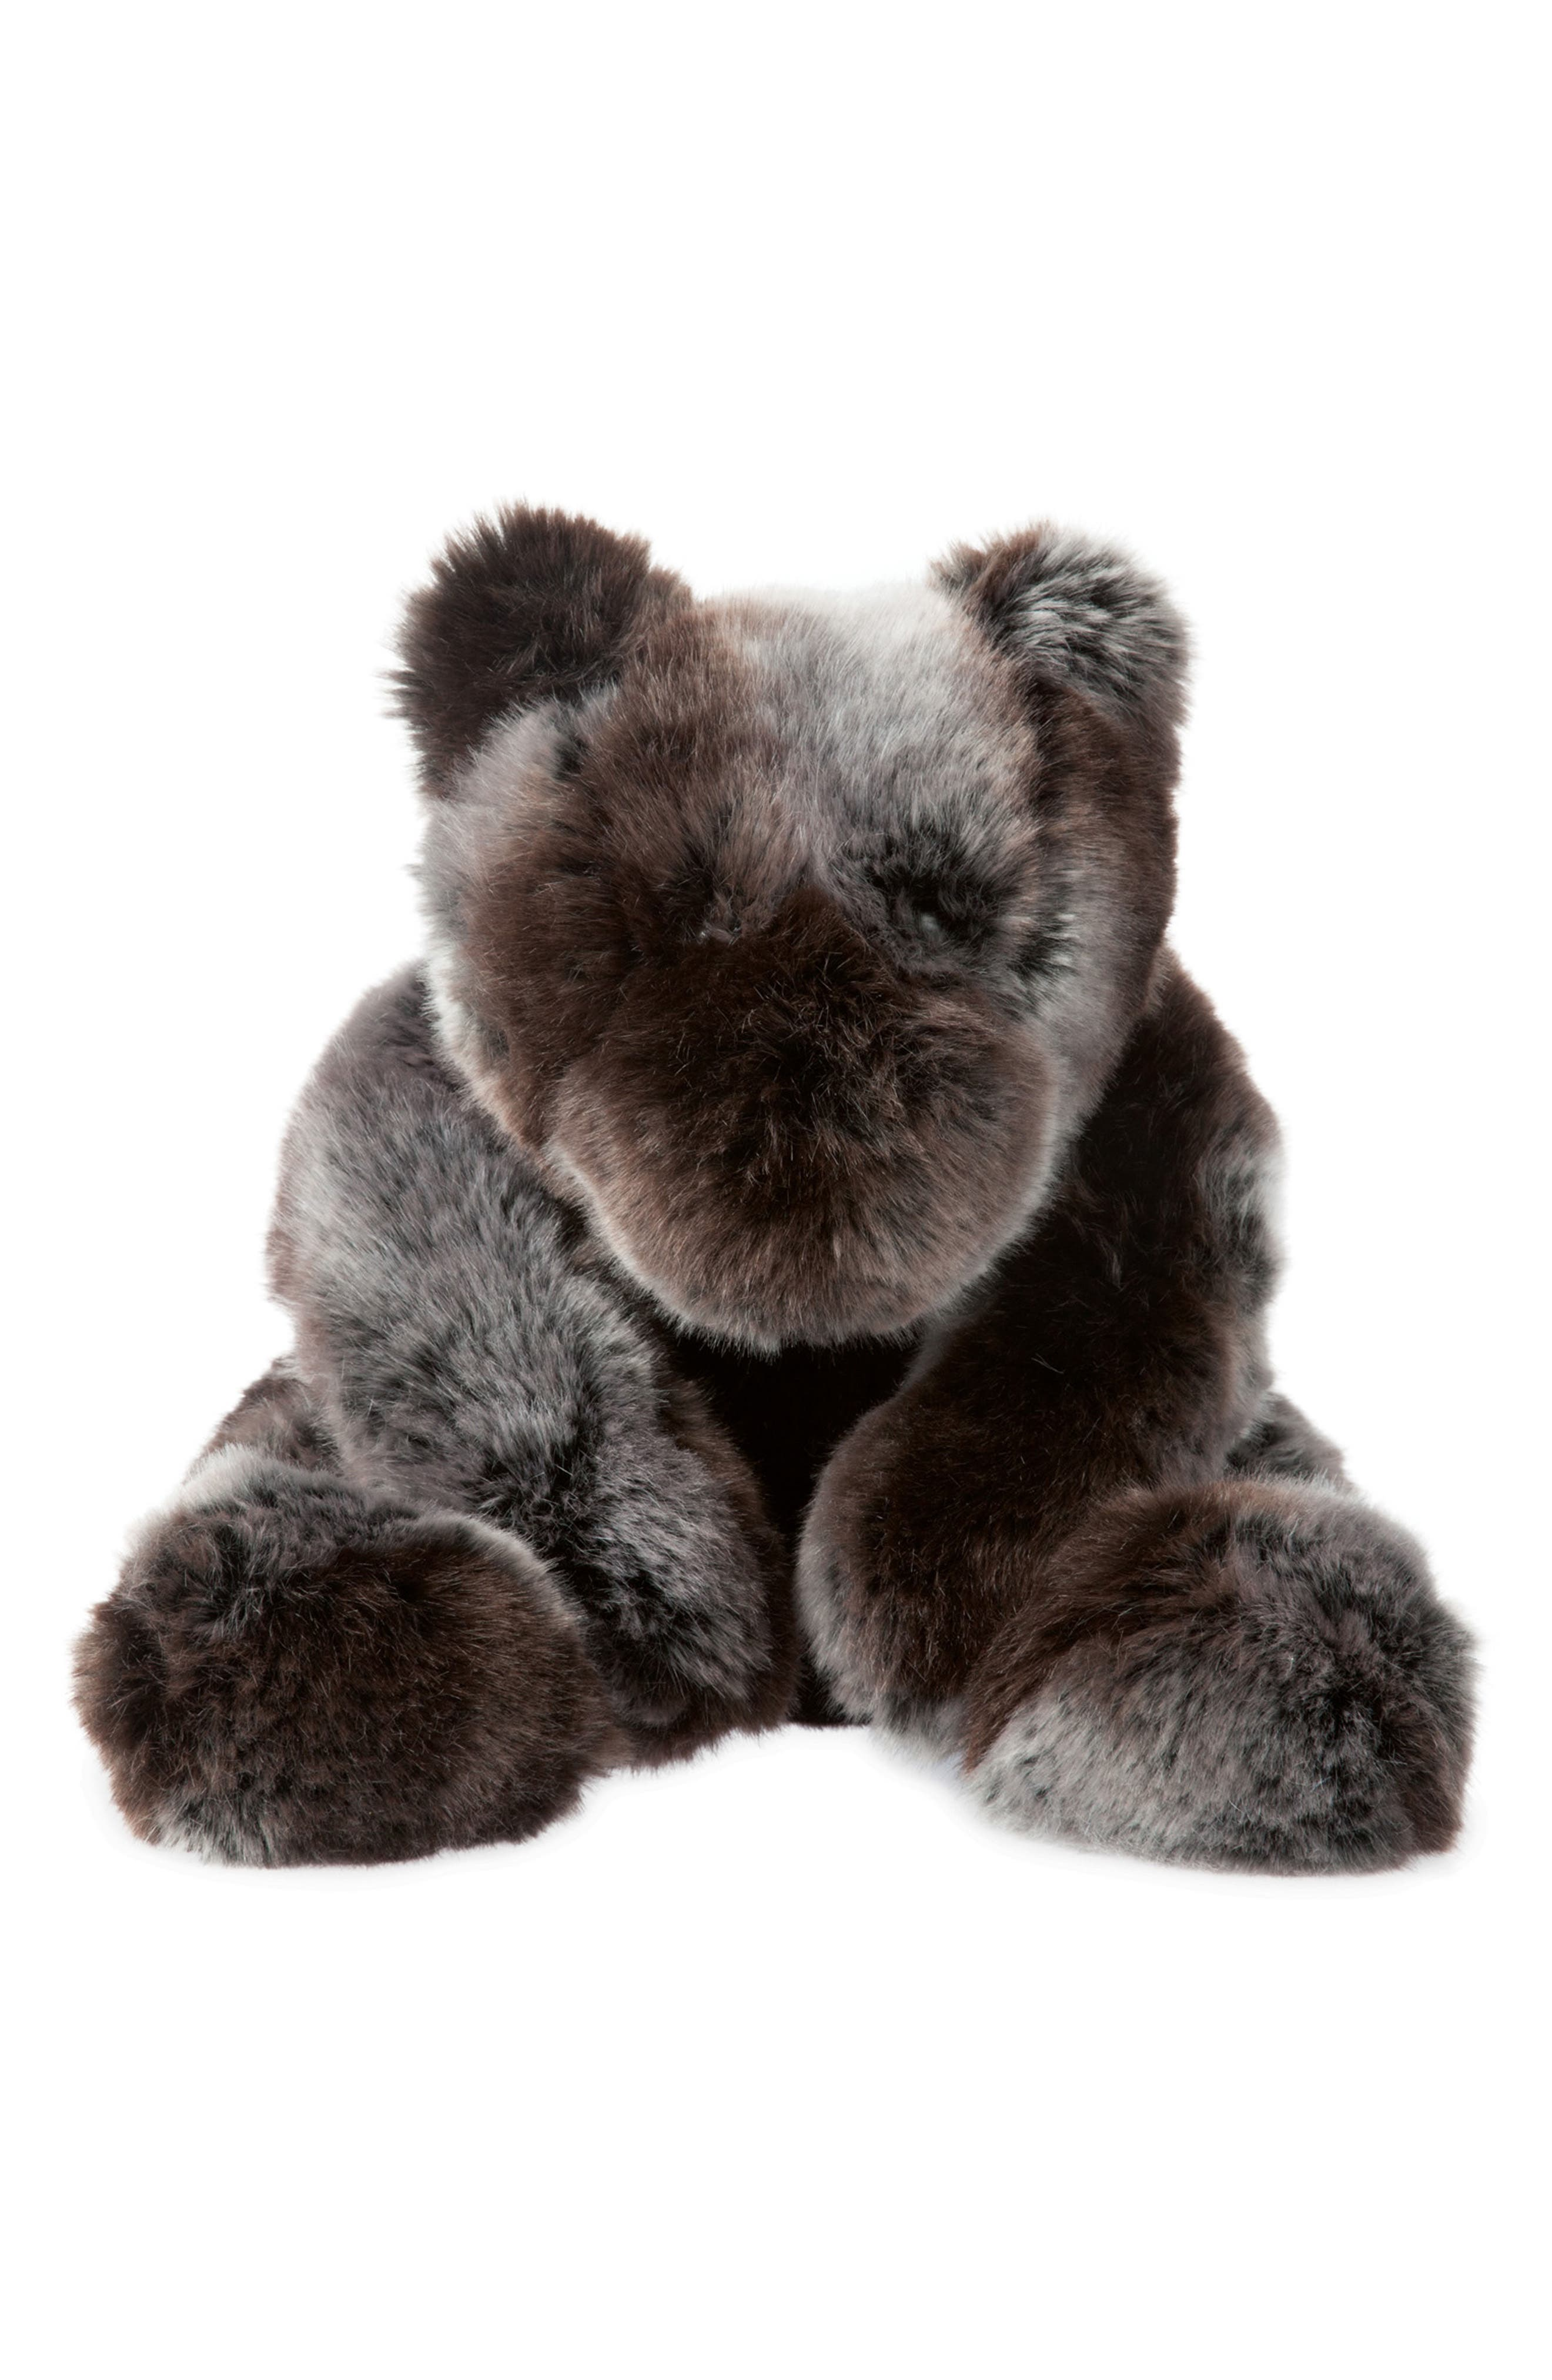 Luxe Sable Bear Stuffed Animal,                             Main thumbnail 1, color,                             200